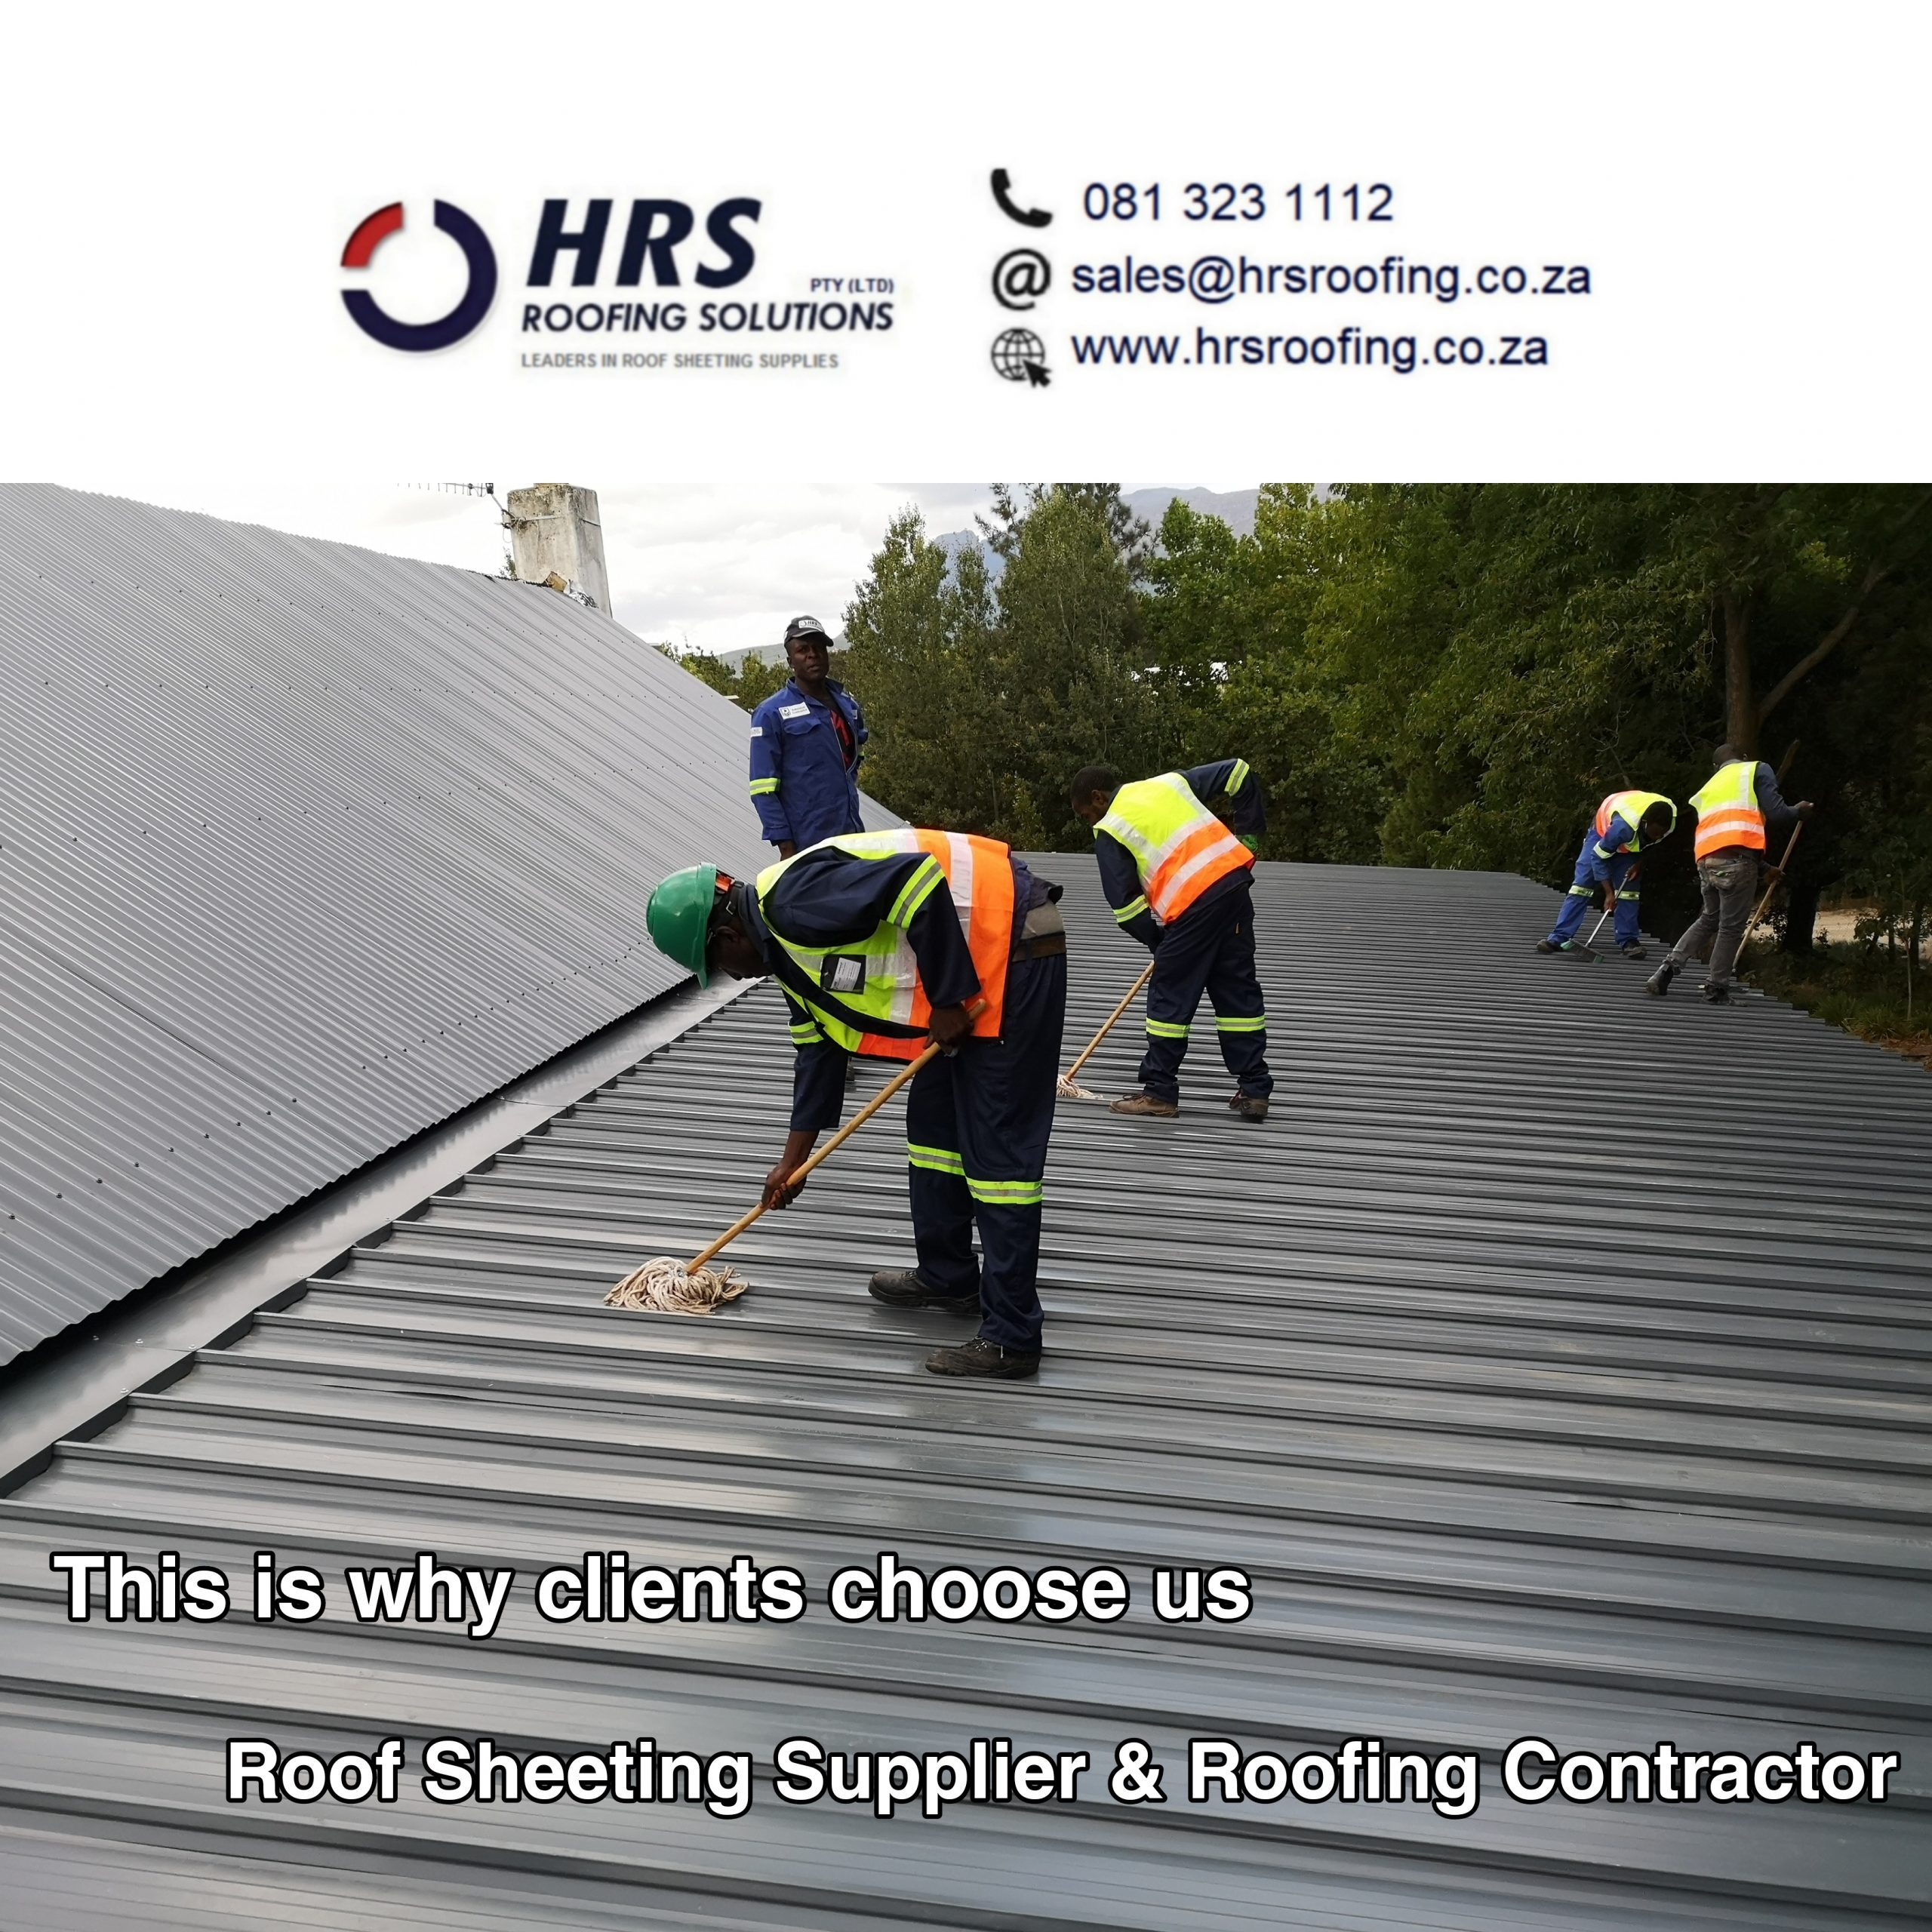 HRS ROOFING SOLUTIONS roofing contractors and services in Paarl, Somerset west 4